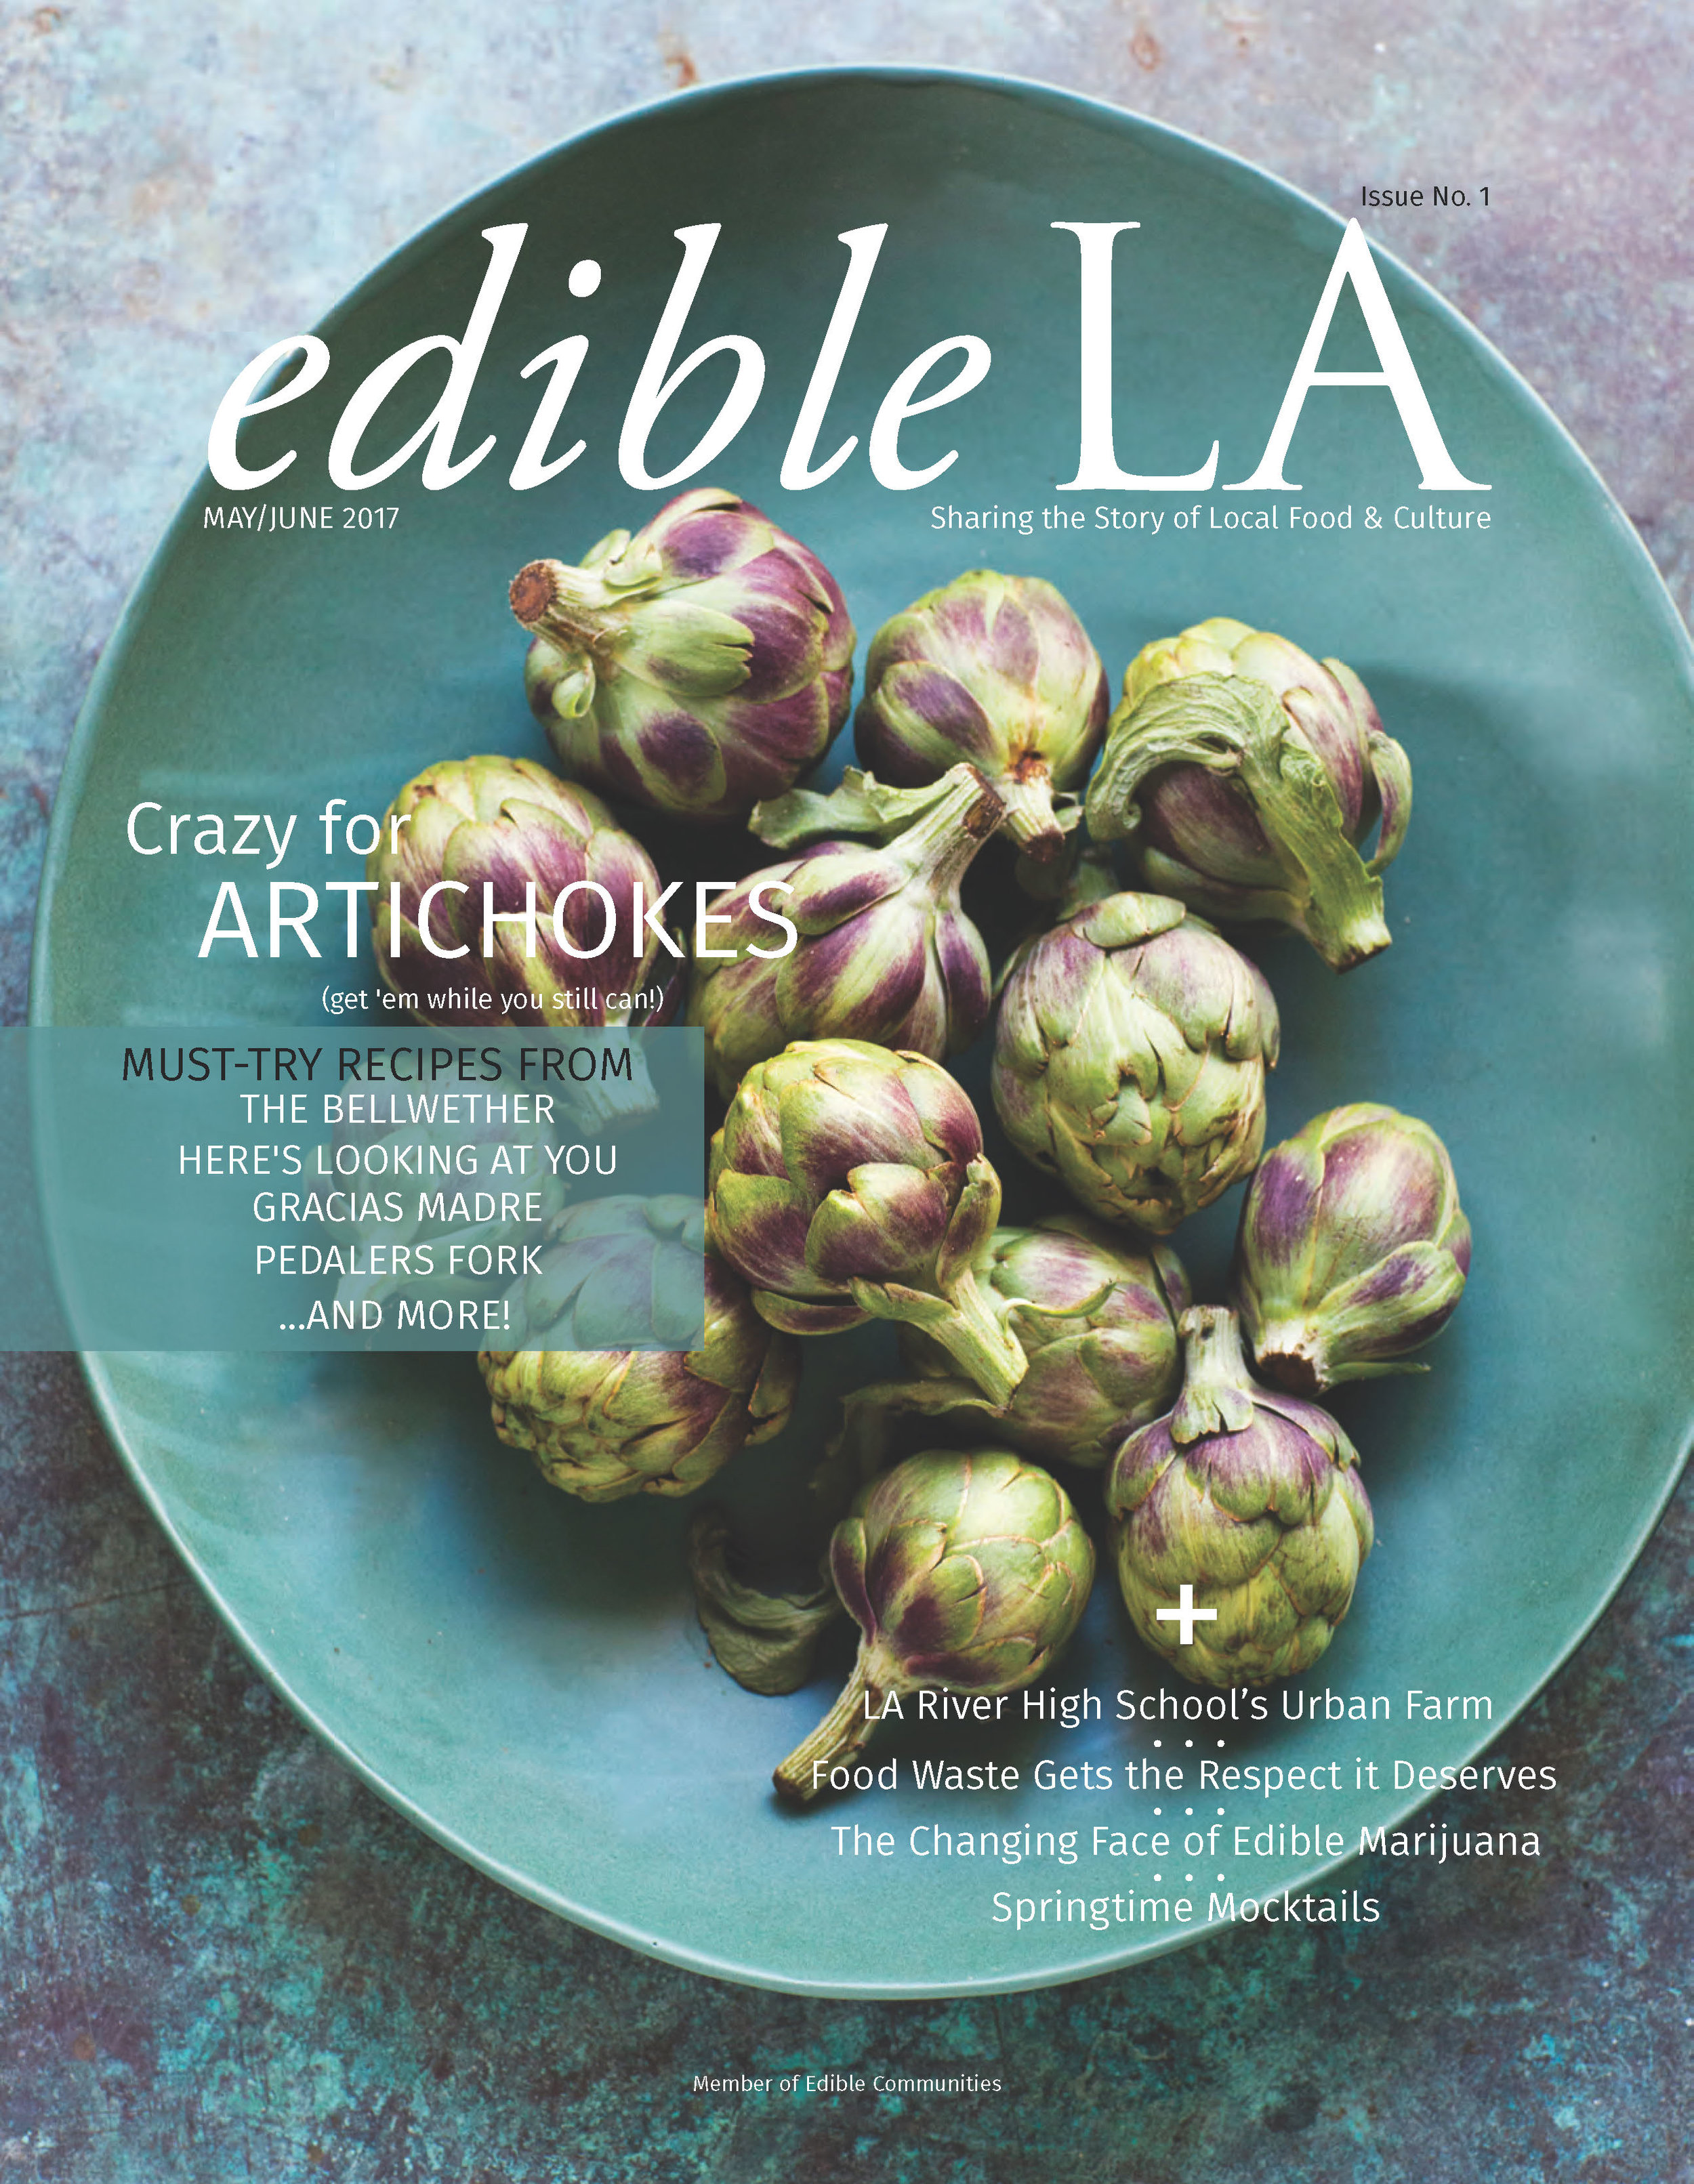 The Soul of a school - Edible LA Issue 1, May/June 2017